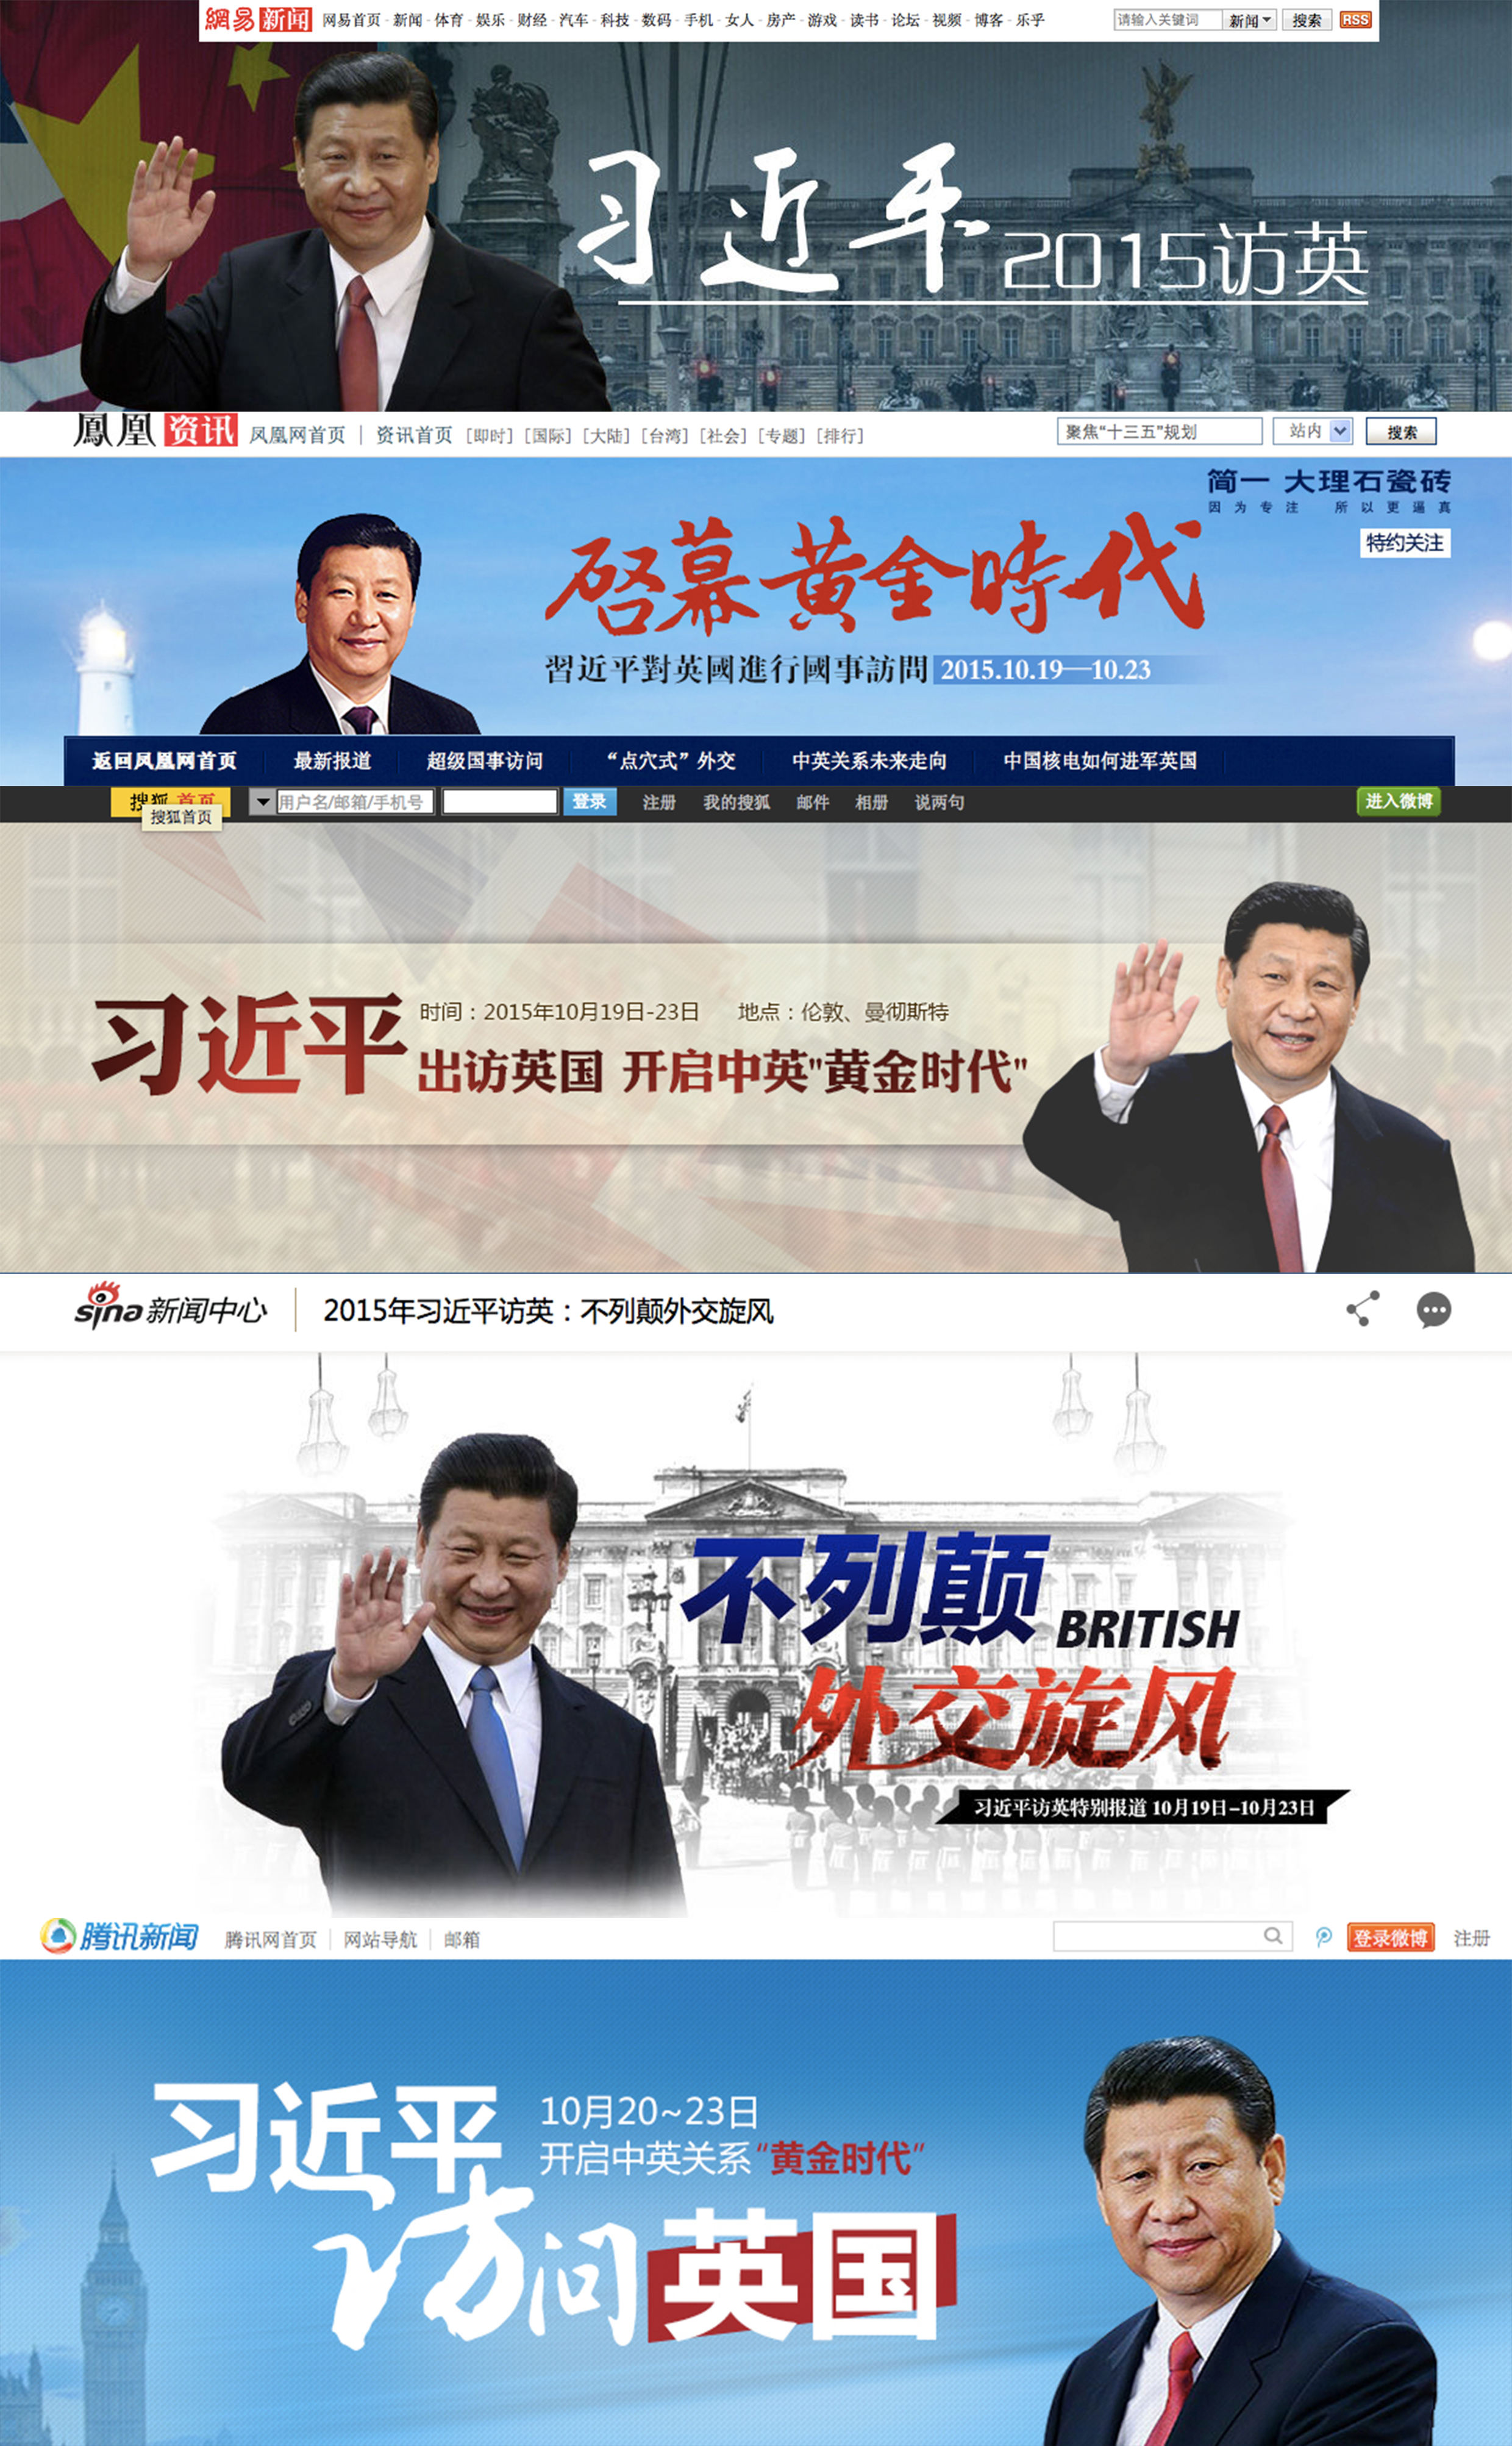 Chinese online media giants gathered news from diverse sources, covering Xi's visit as much as they could.